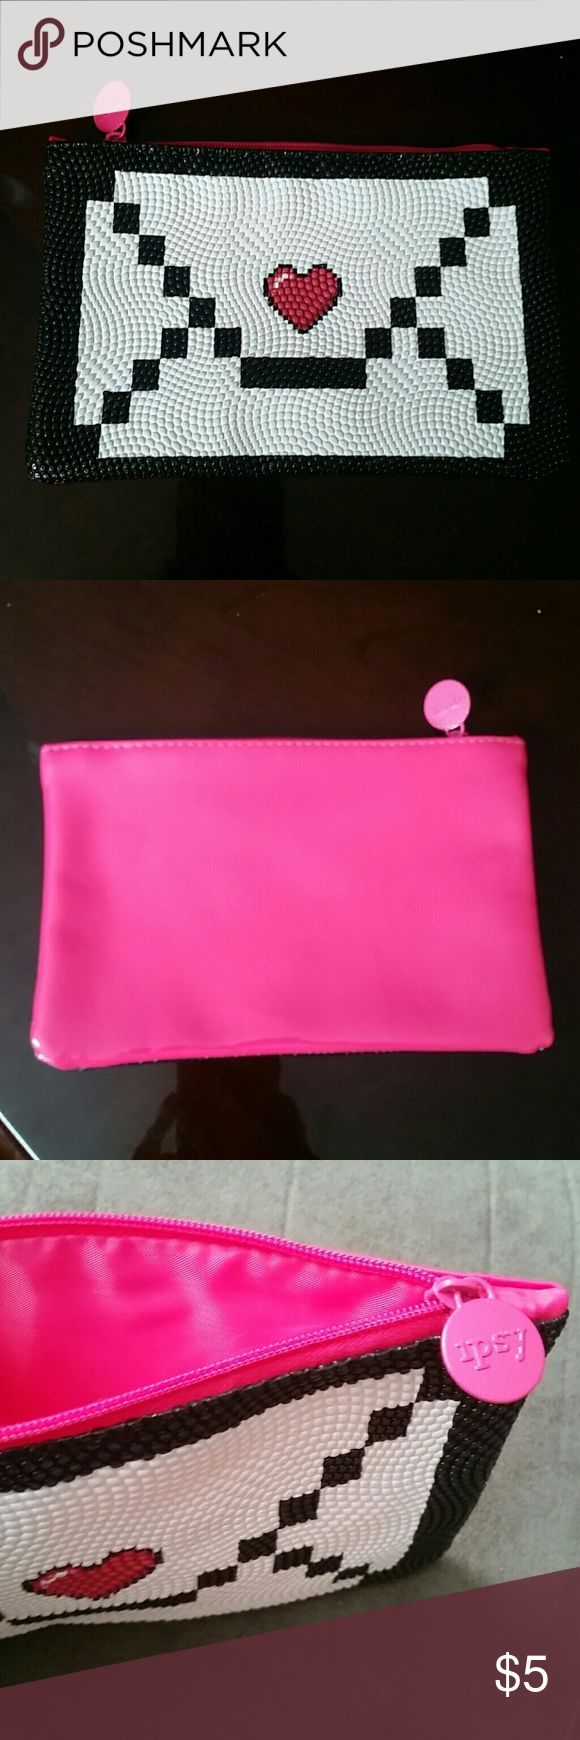 """$5 CLEARANCE  Digital Love Letter Make-up Bag Ipsy Make-up Bag / Cosmetic Bag Digital Love Letter design on front Solid Patent Pink back Pink zipper and lining Approximately 4.5"""" x 7""""  Bundle Discount Offers Welcome!  Summer, Fall, Autumn, Winter, Back to School bts, Student, Wear to Work, Teacher, Flirty, Fun, Edgy, romantic, valentines, love, classic Ipsy Bags Cosmetic Bags & Cases"""